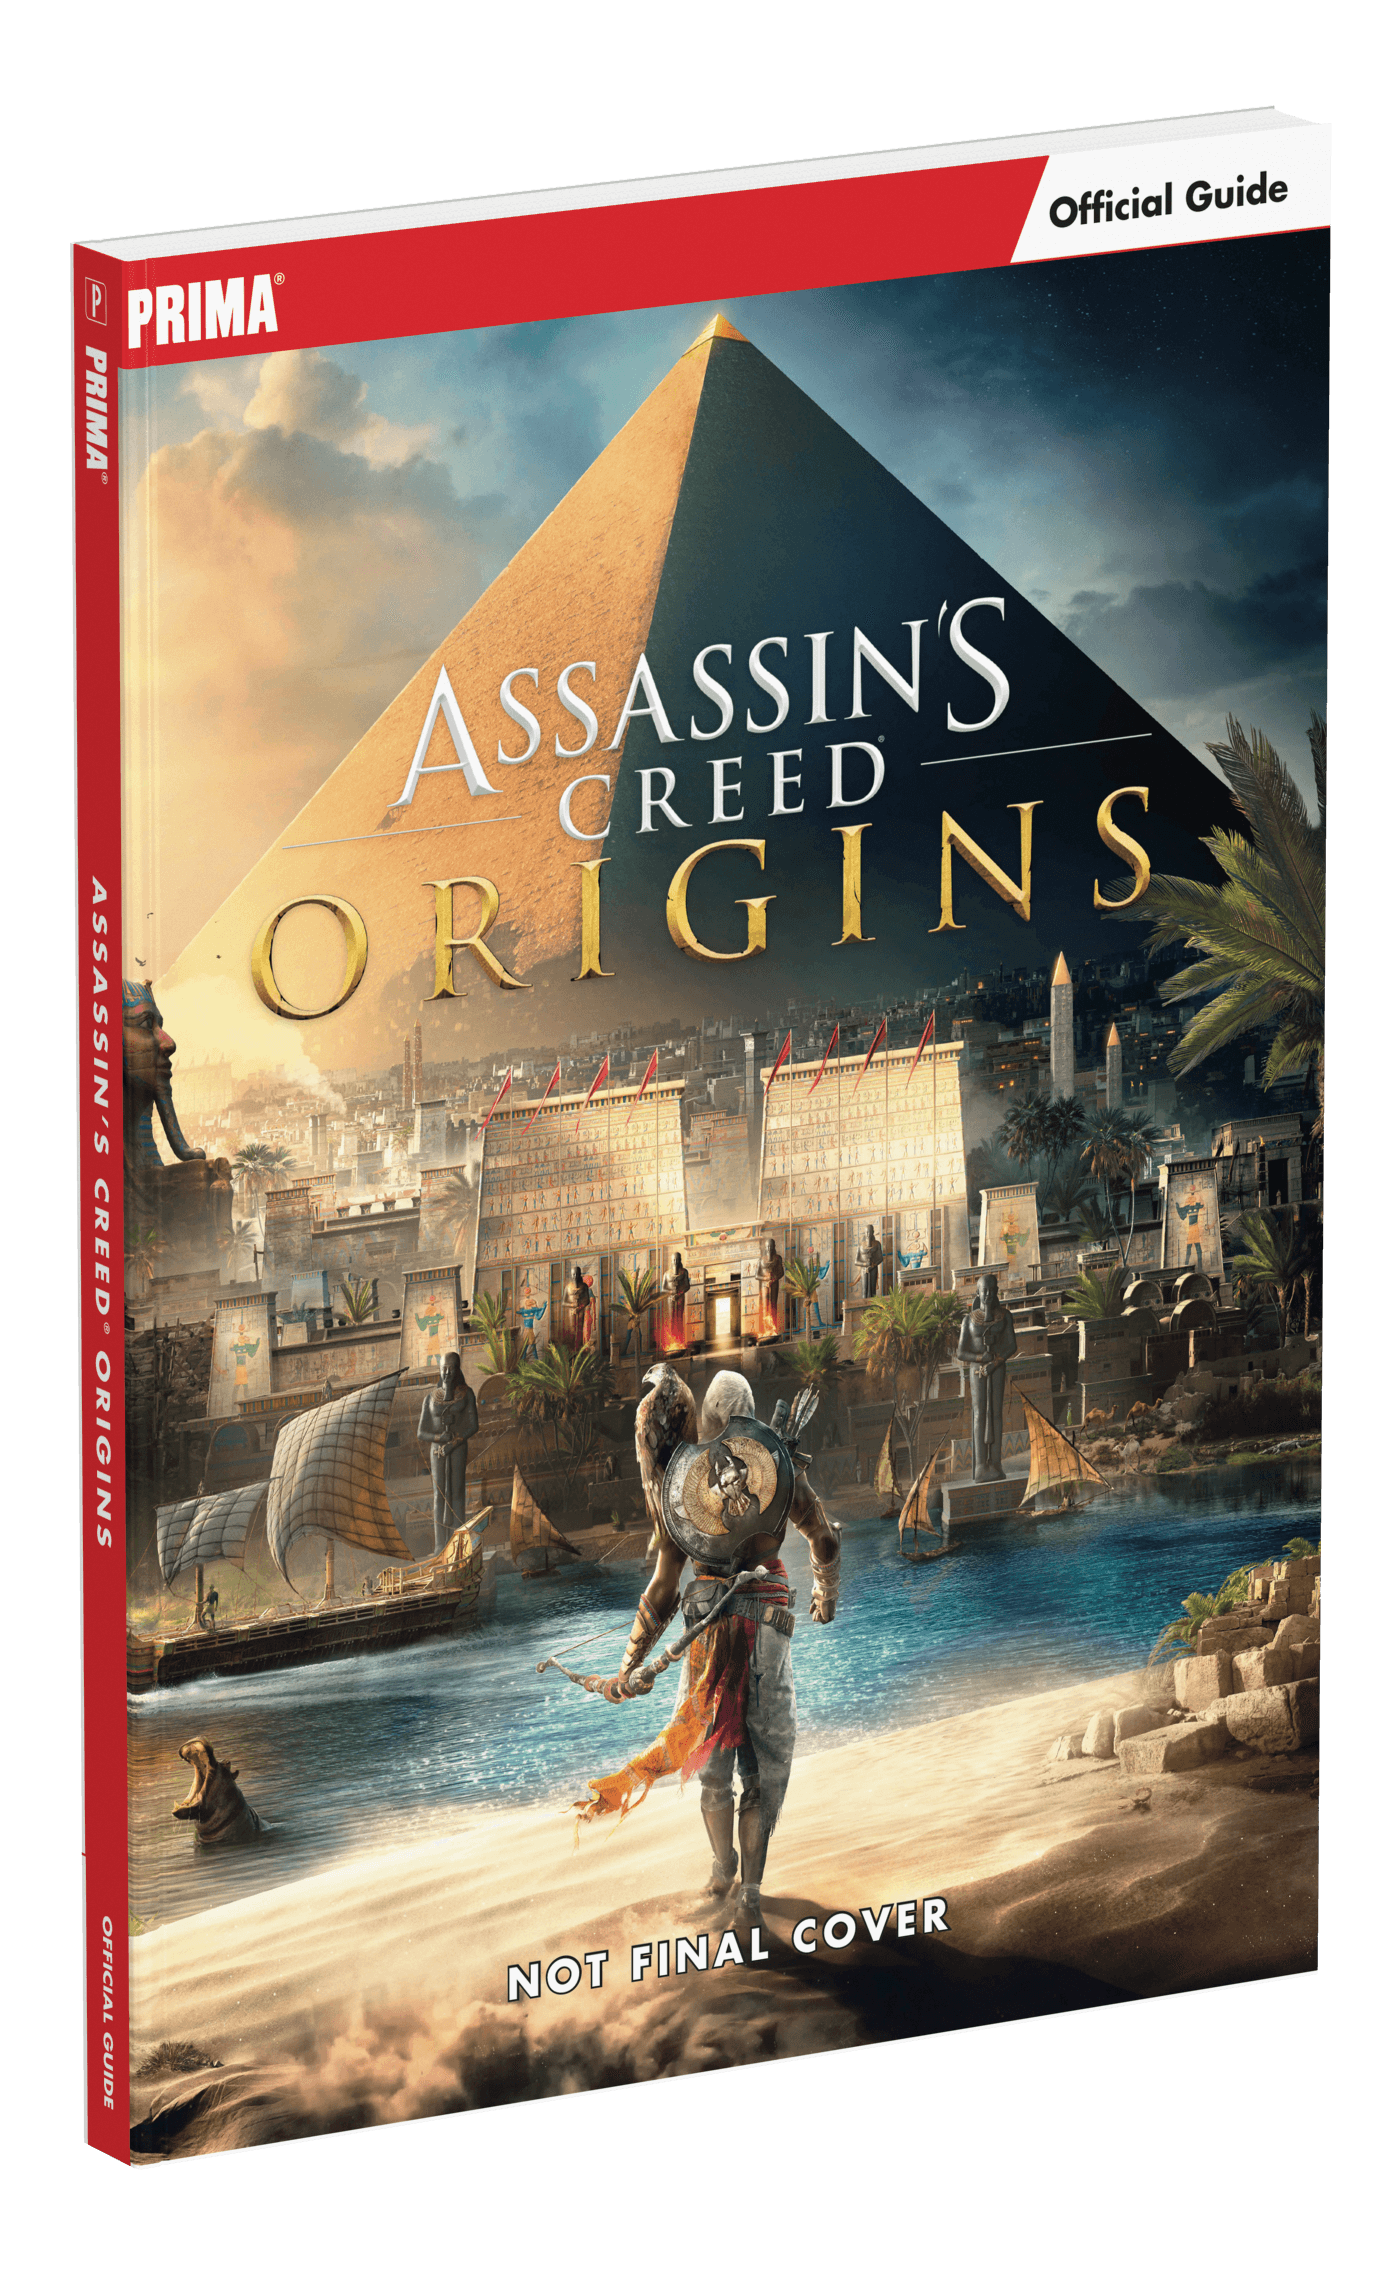 Ubisoft-Assassin's_Creed_Origins_Official_Guide